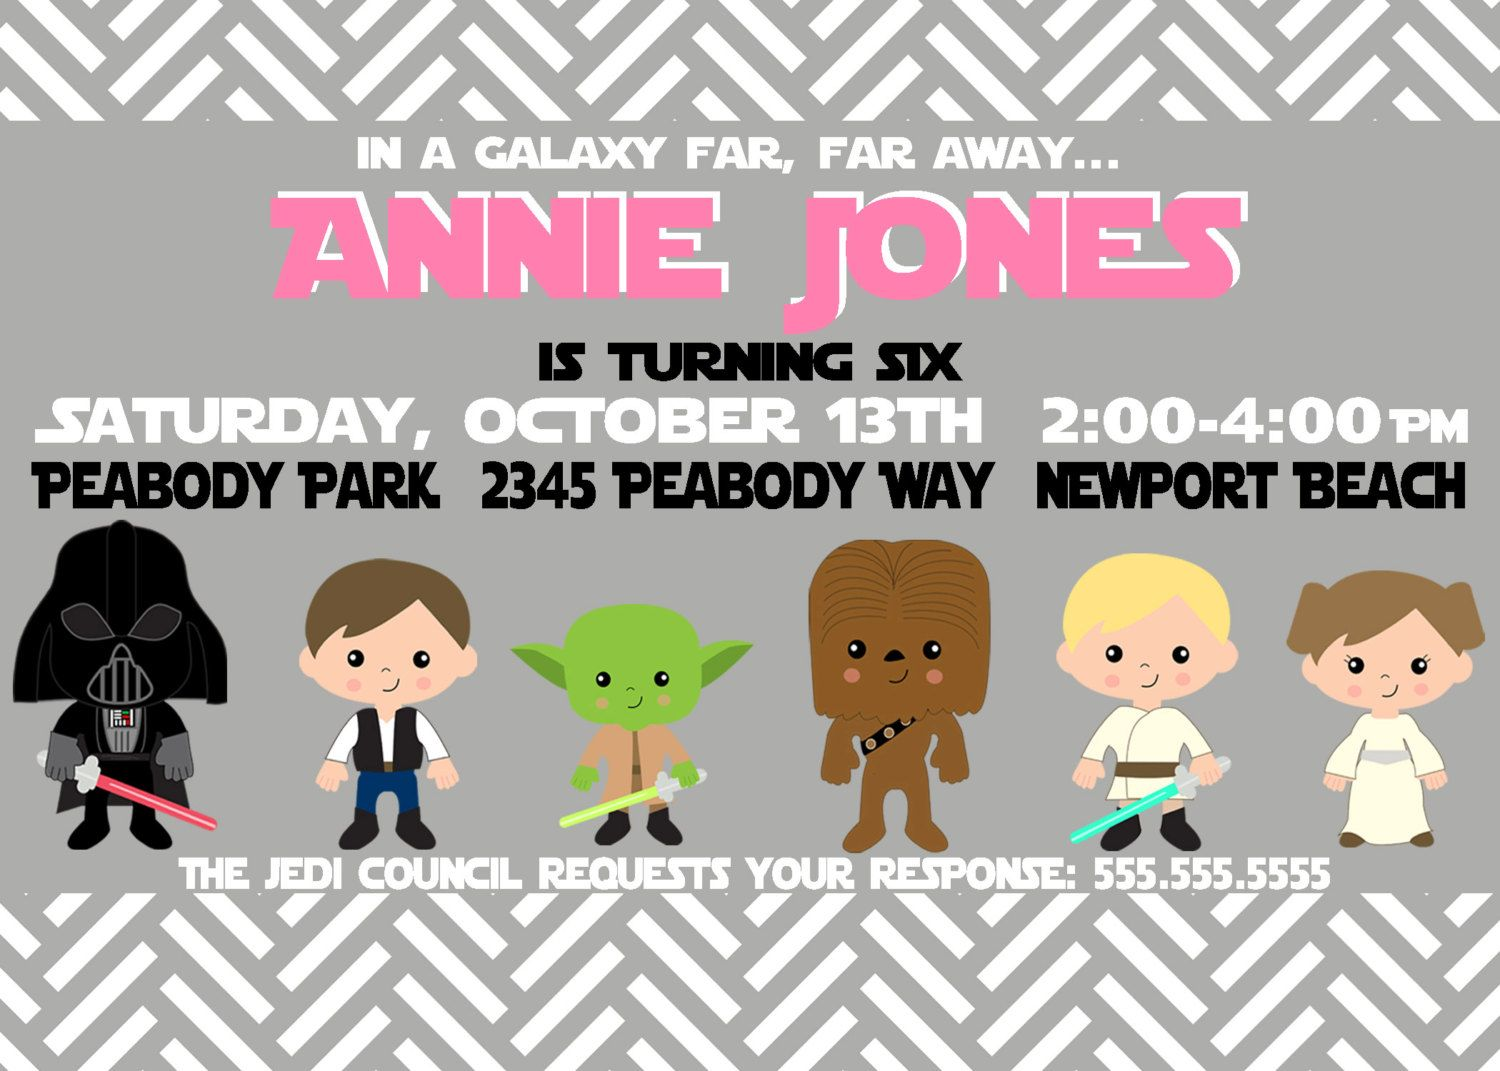 Star wars custom birthday invite for girls star wars party star wars custom birthday invite for girls star wars party invitation party supplies 1200 via etsy filmwisefo